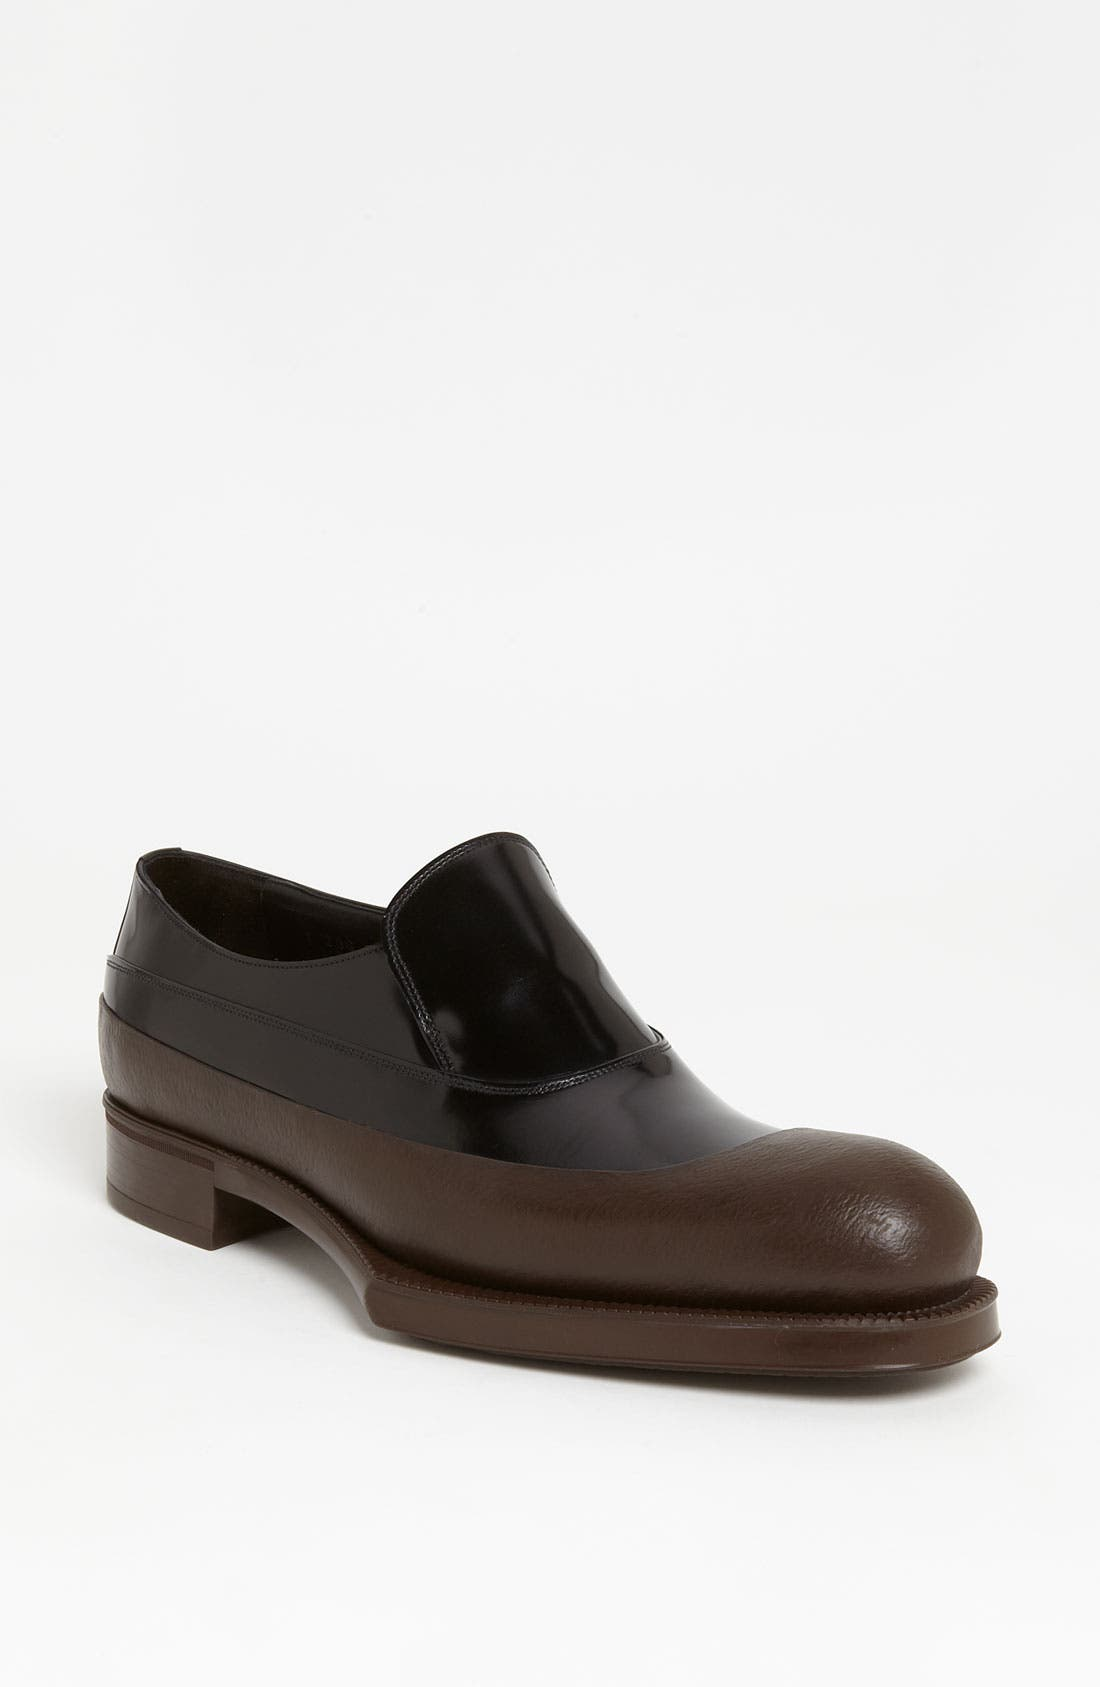 Main Image - Prada Rubber Tipped Loafer